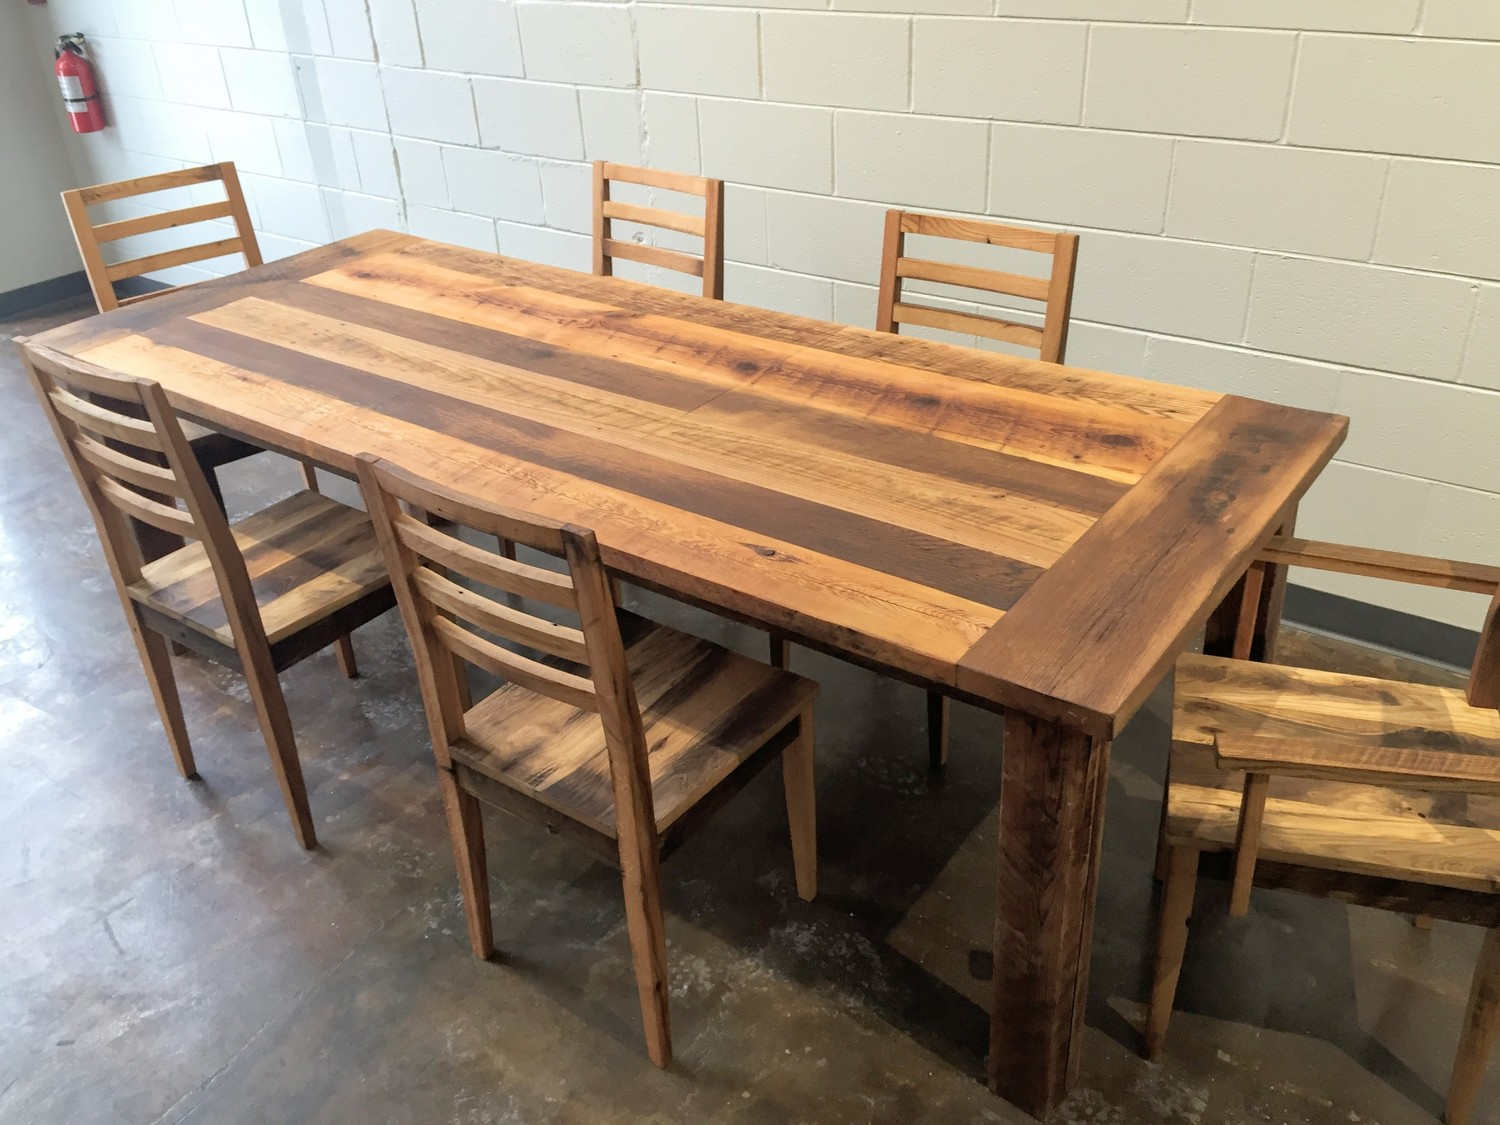 Reclaimed Wood Tables Barn What We Make